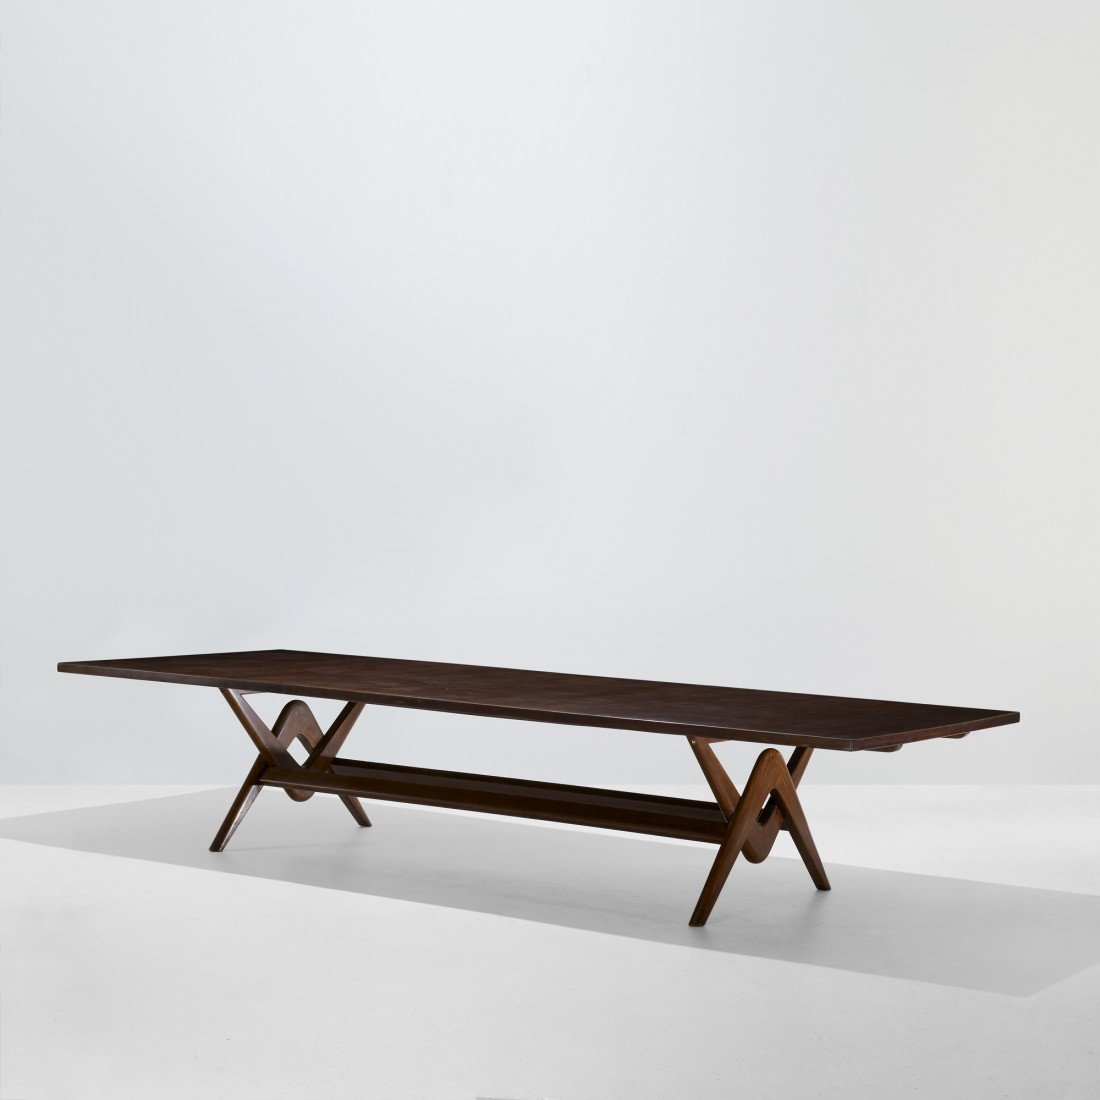 122: Le Corbusier and Jeanneret conference table